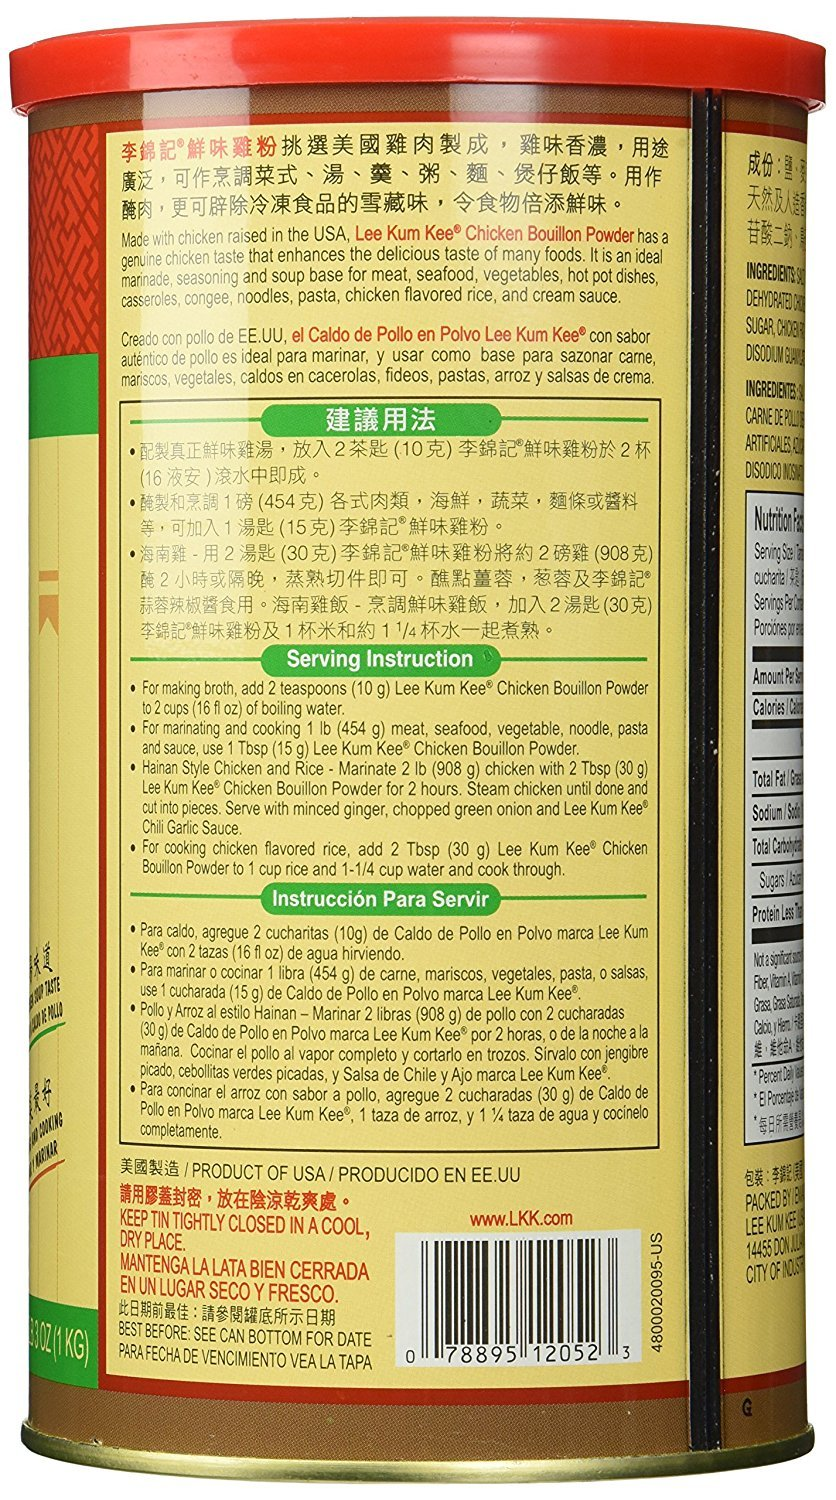 Amazon.com : Lee Kum Kee Chicken Bouillon - Chicken Powder (2.2 lbs.) + Premium Dark Soy Sauce - 16.9 fl. oz + Gold Plum Chinkiang Vinegar 18.6 fl oz + One ...